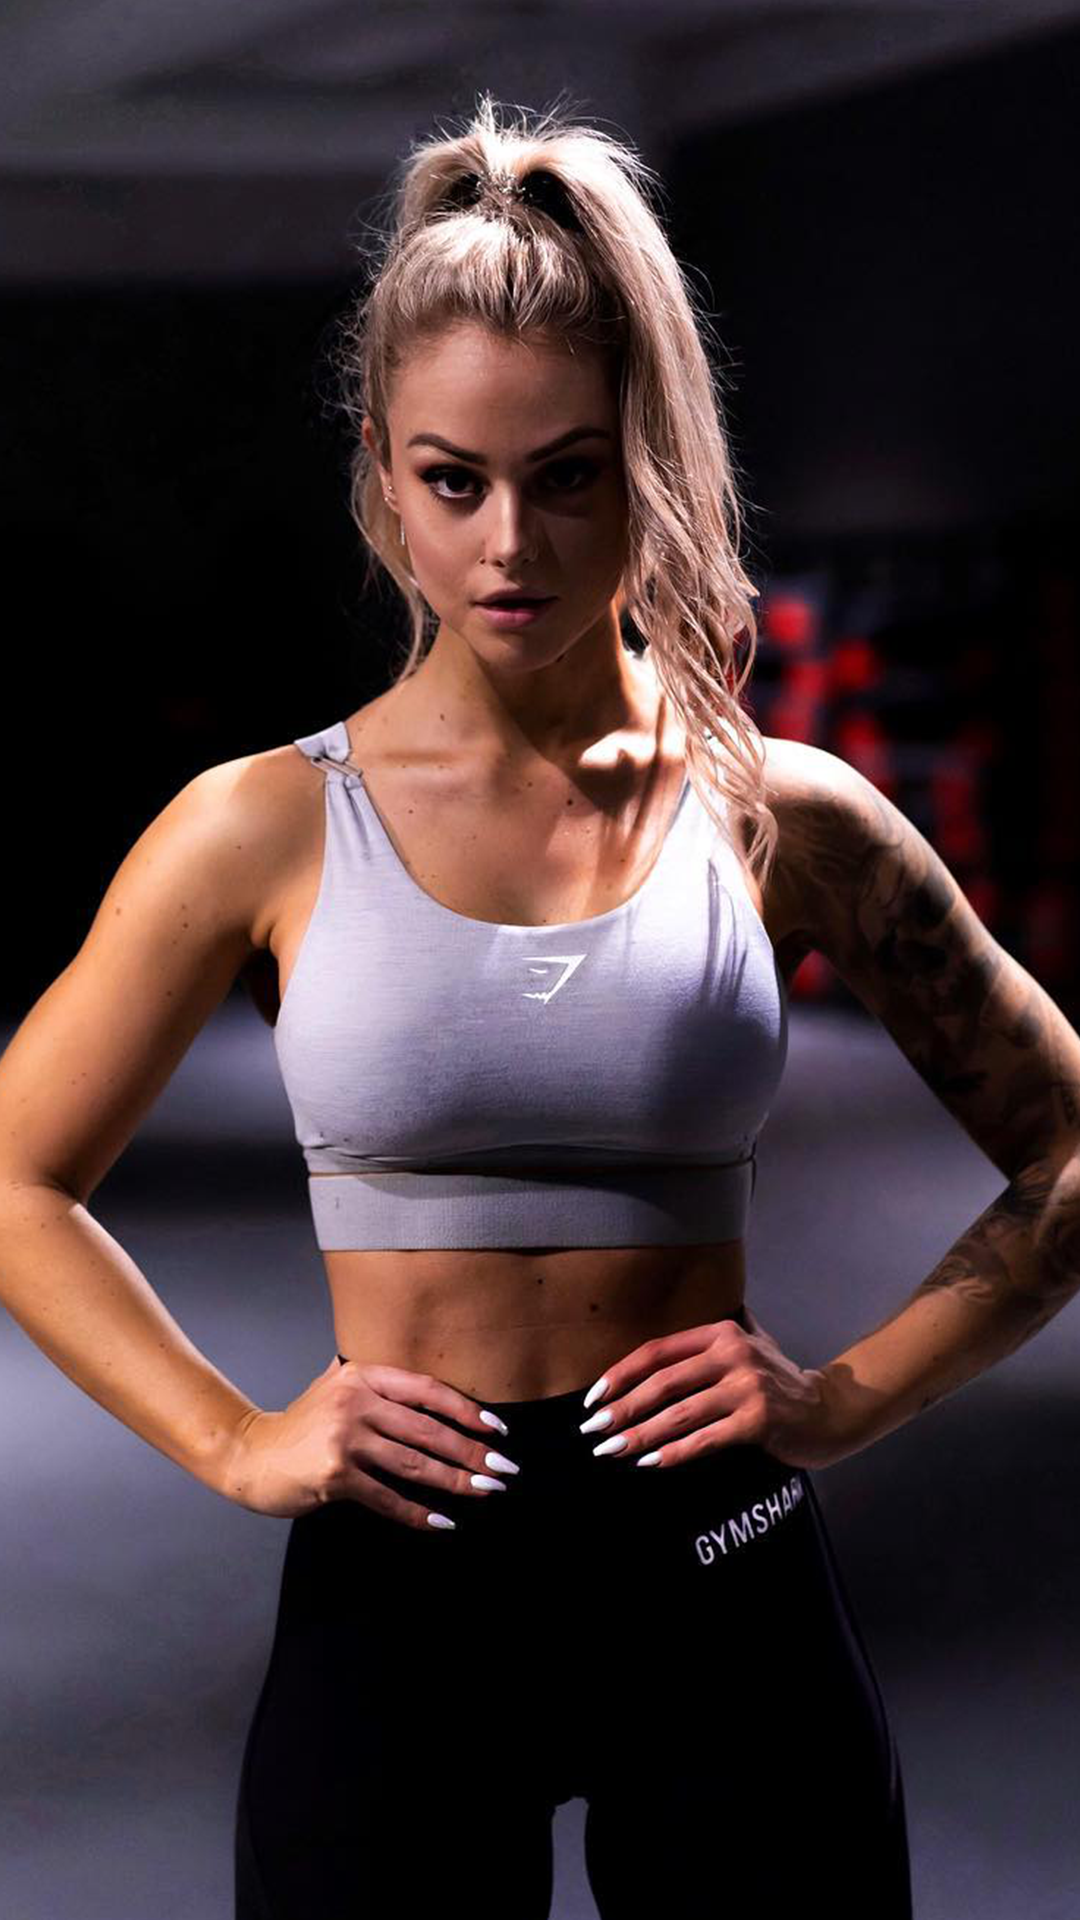 athlete nutrition #athletenutrition Johanna Modin, Gymshark Athlete, doesn't let anything get in her...